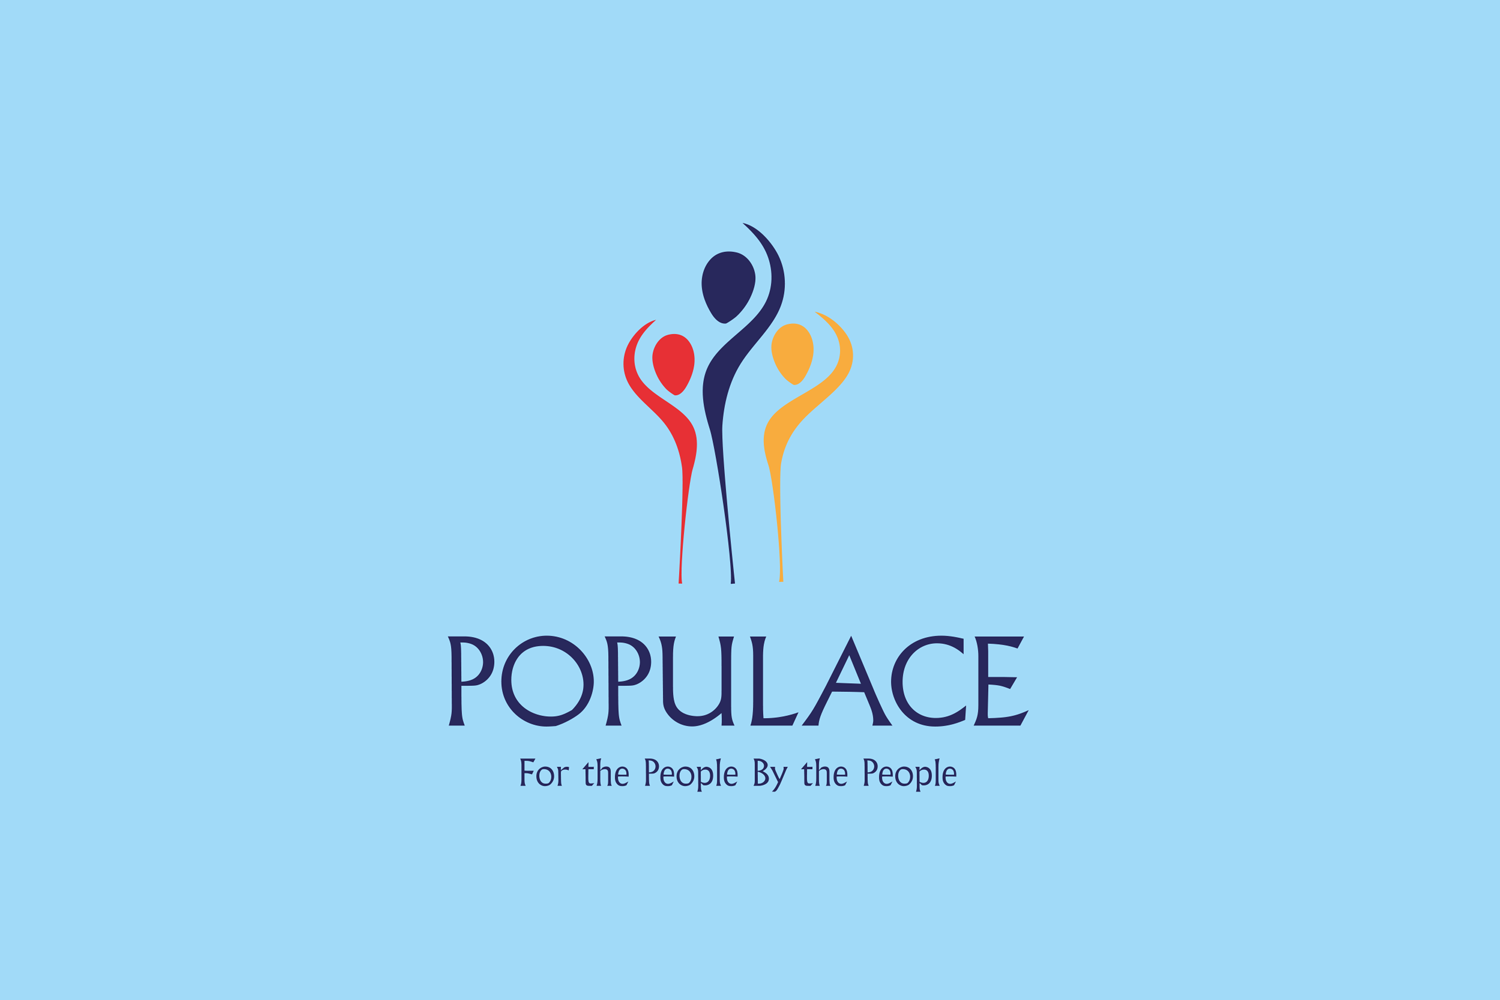 Populace-1